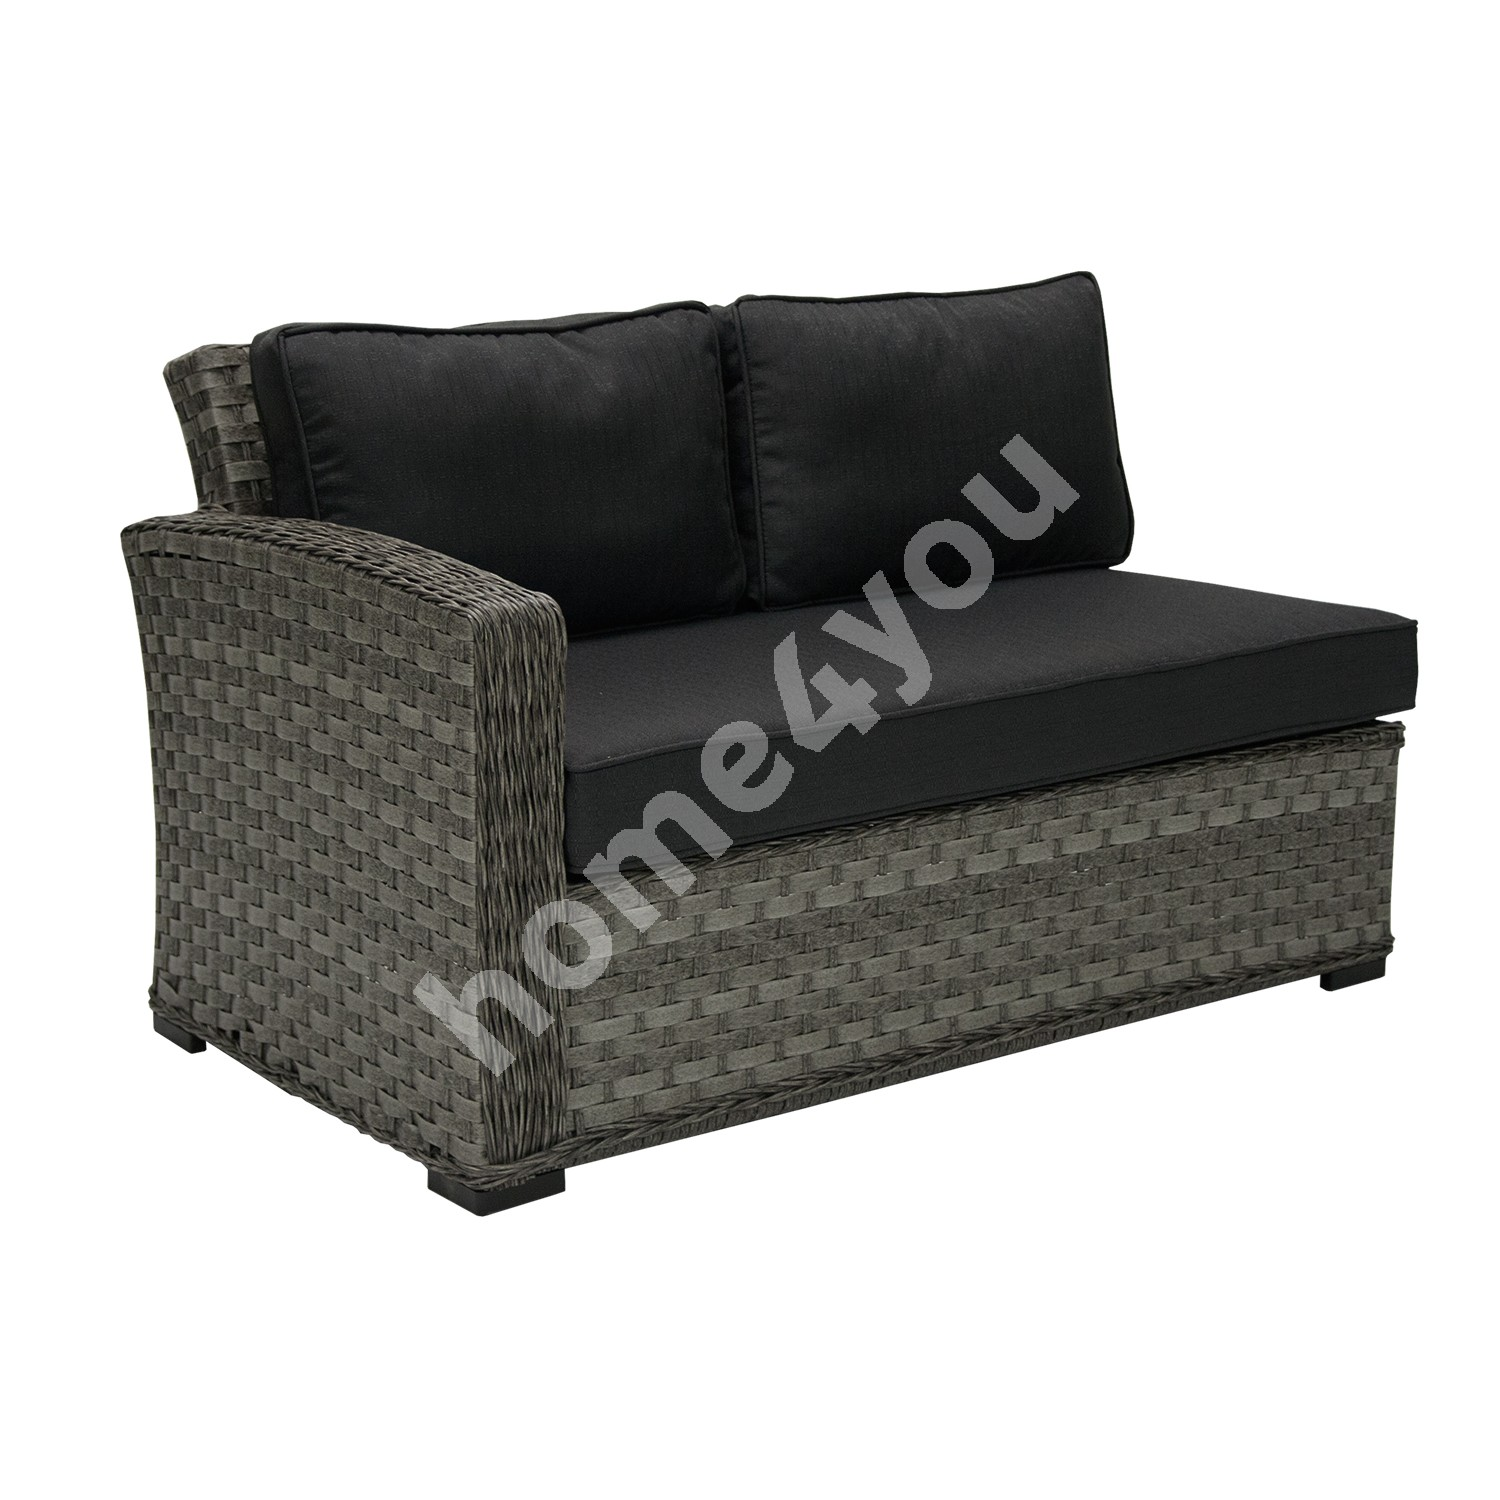 Module sofa GENEVA with cushions, with left arm 81x132x78cm, aluminum frame with plastic wicker, color: dark grey